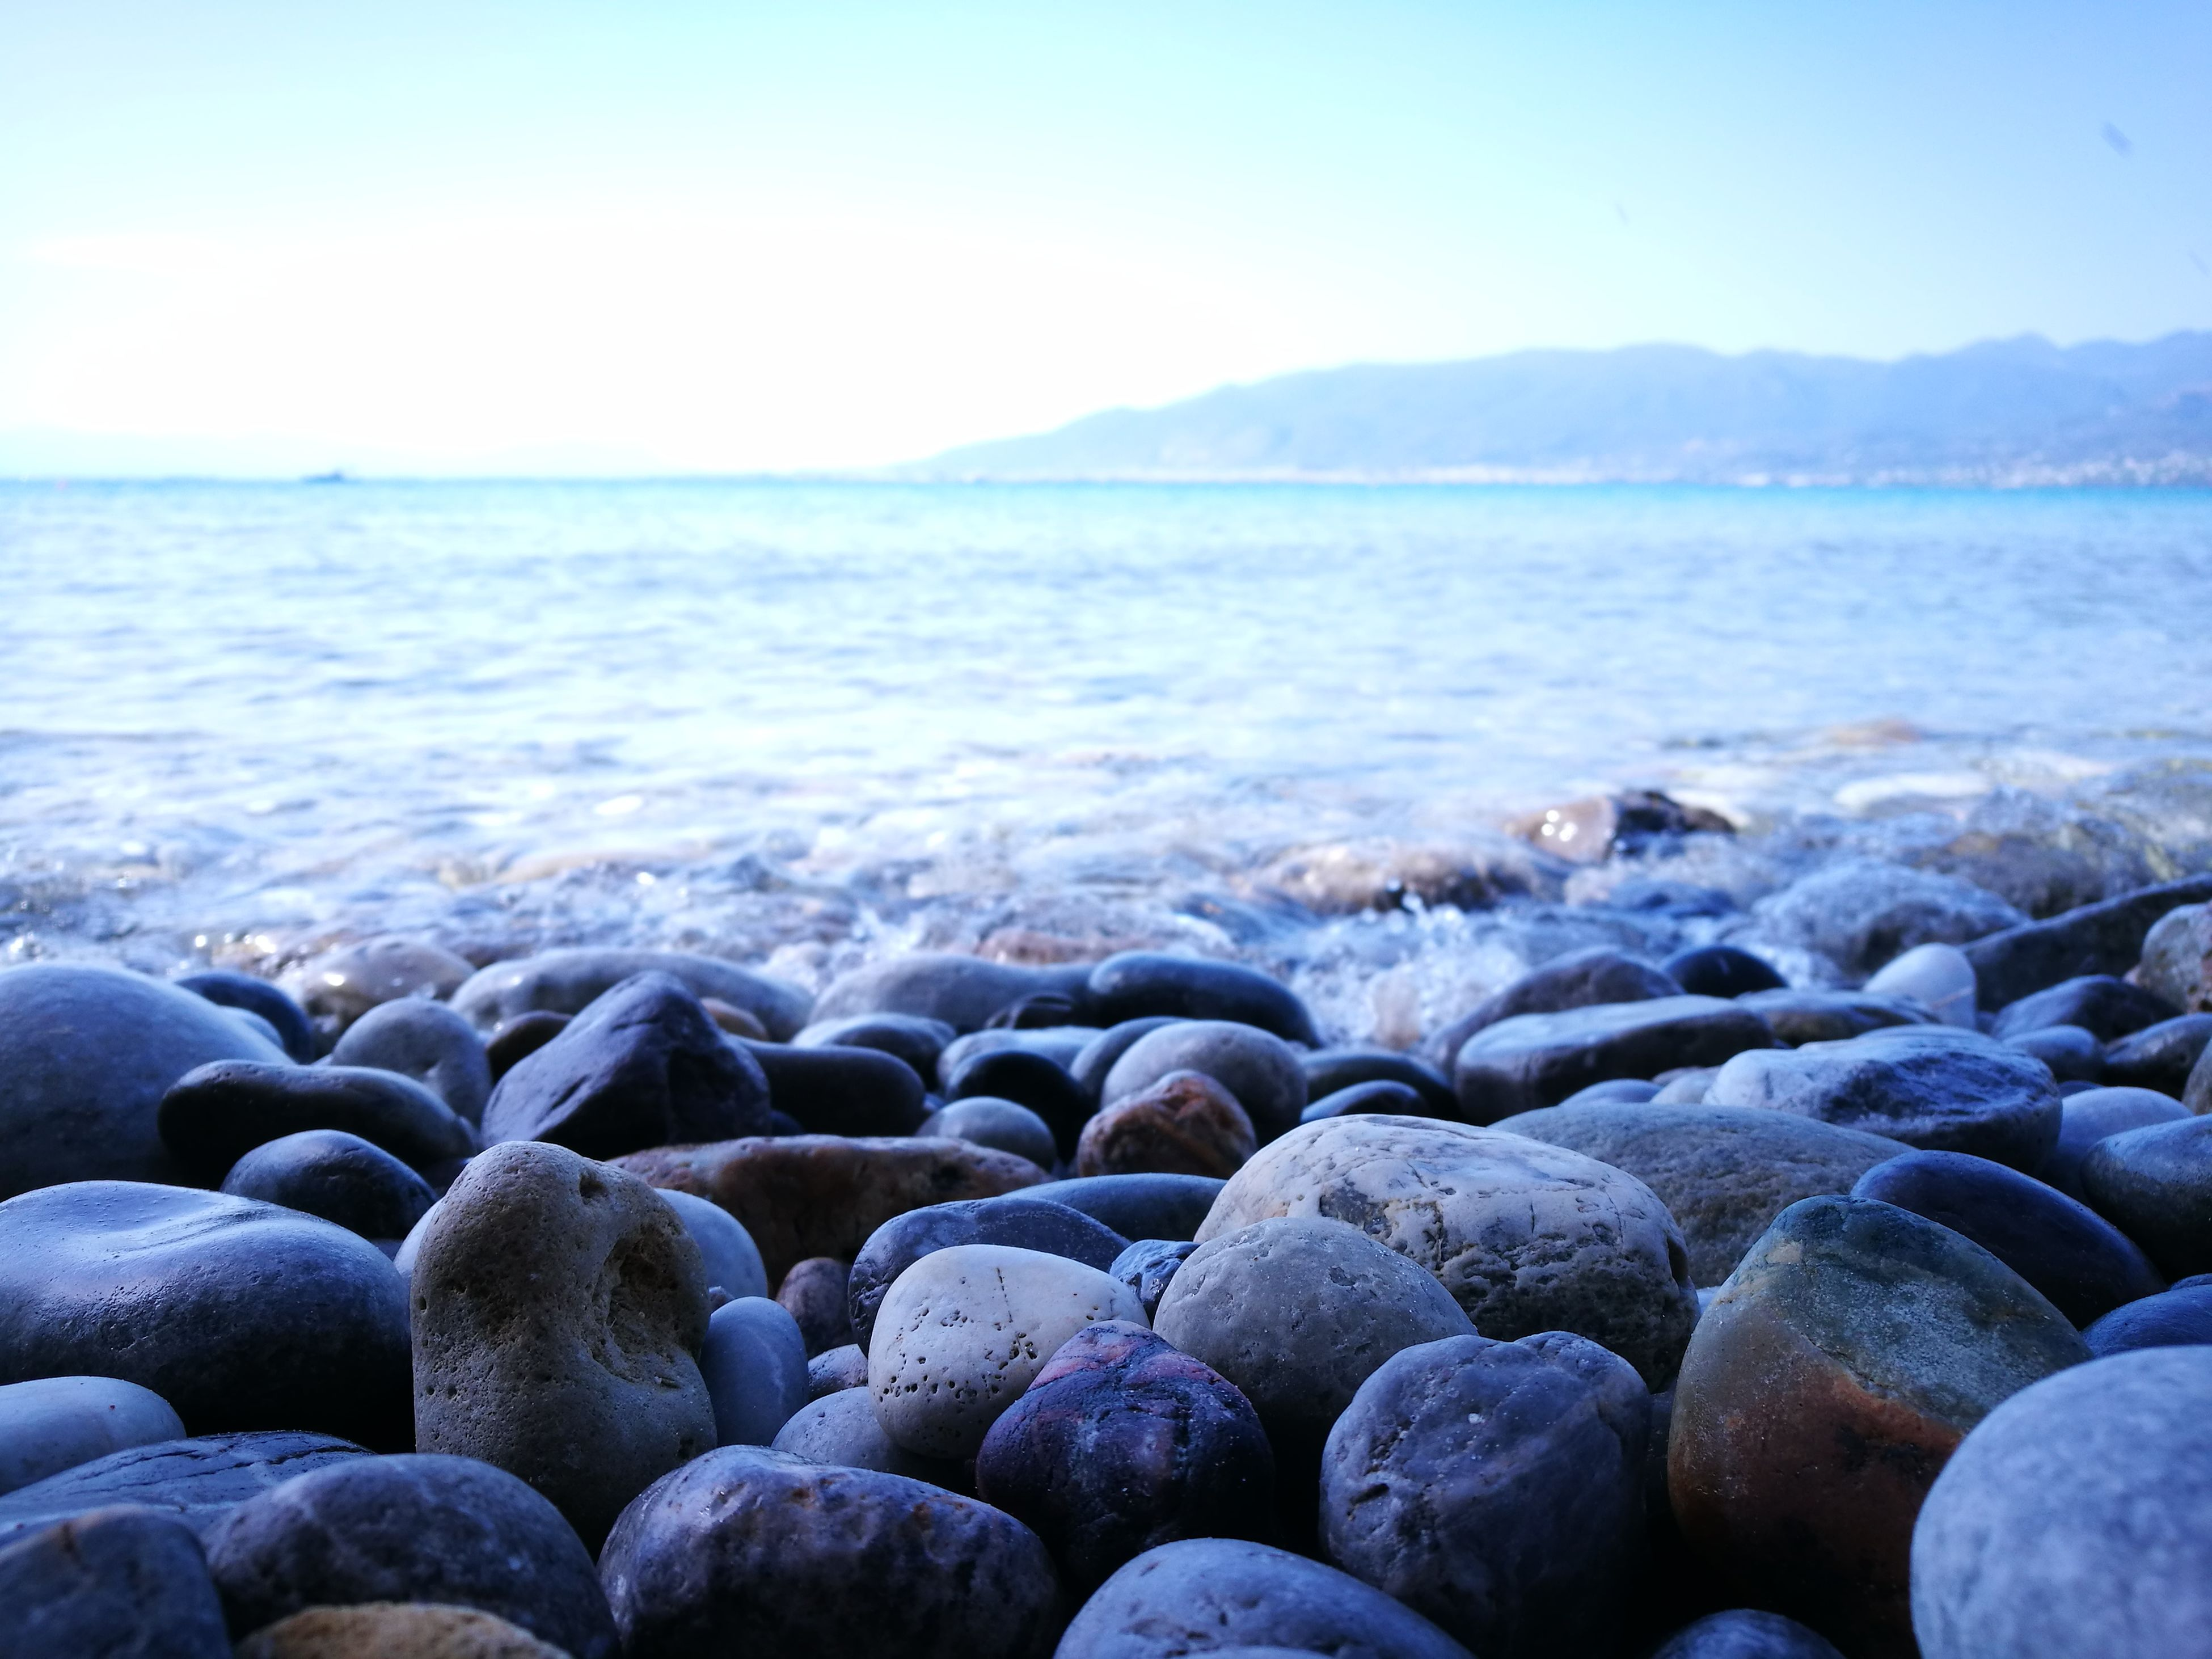 pebble, sea, beach, shore, pebble beach, water, nature, beauty in nature, no people, outdoors, tranquil scene, day, tranquility, scenics, horizon over water, close-up, sky